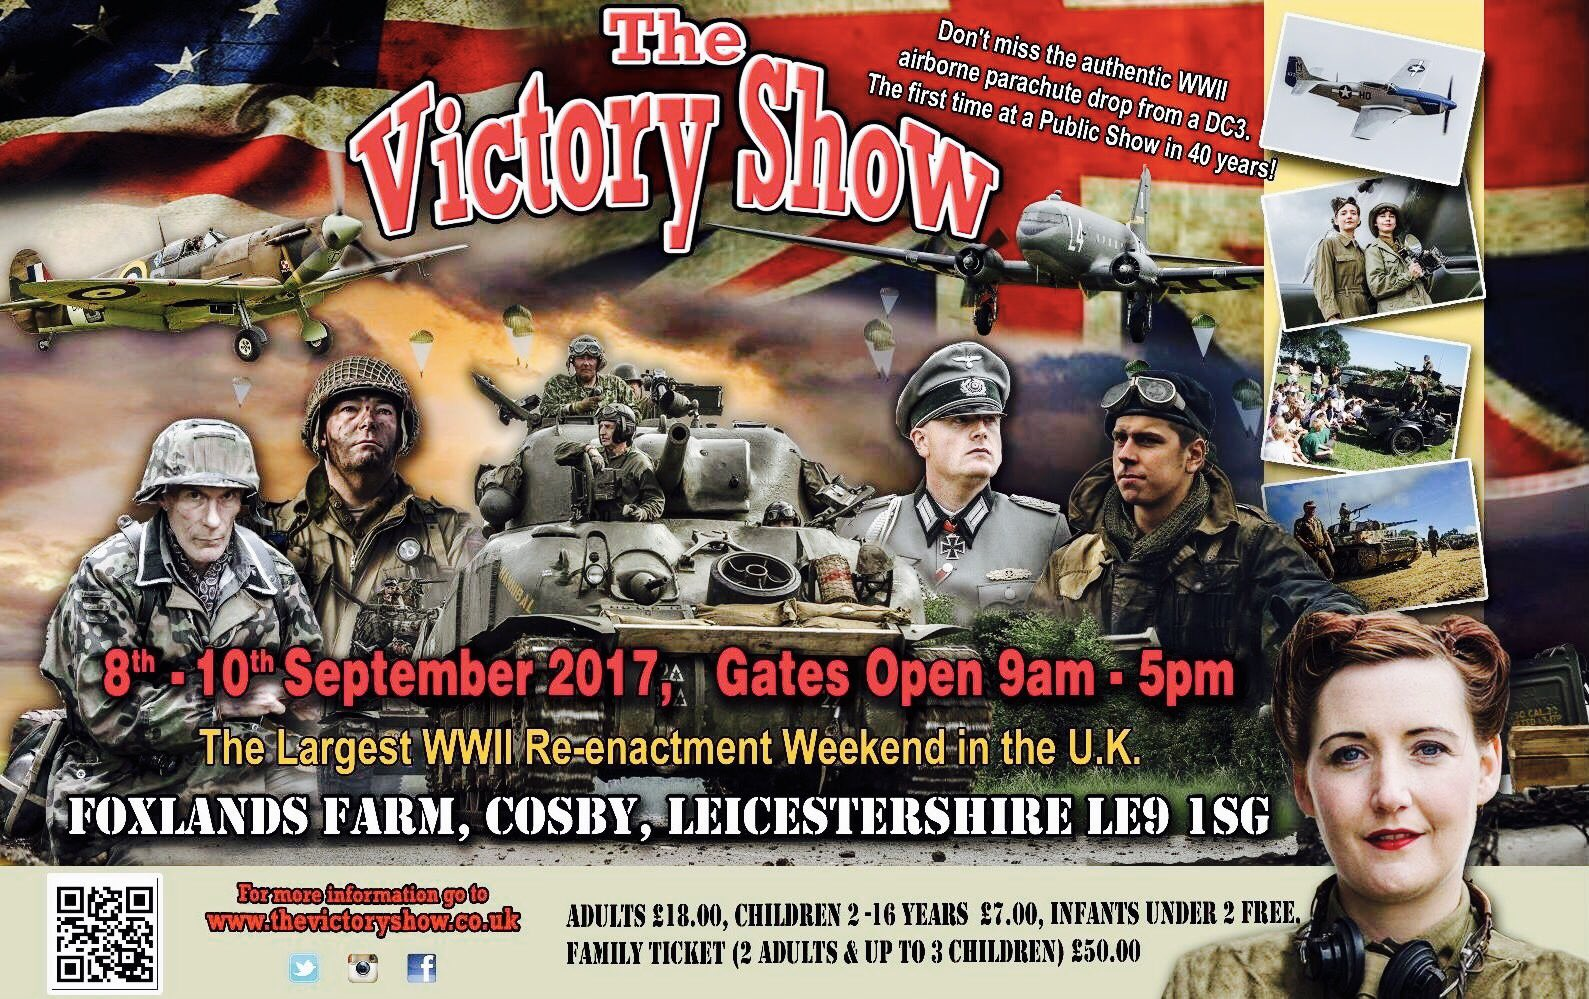 Not long to go now!!!  Busy busy busy!!  We hope to see you there #thevictoryshow #1940s https://t.co/pYFkNIsLjf